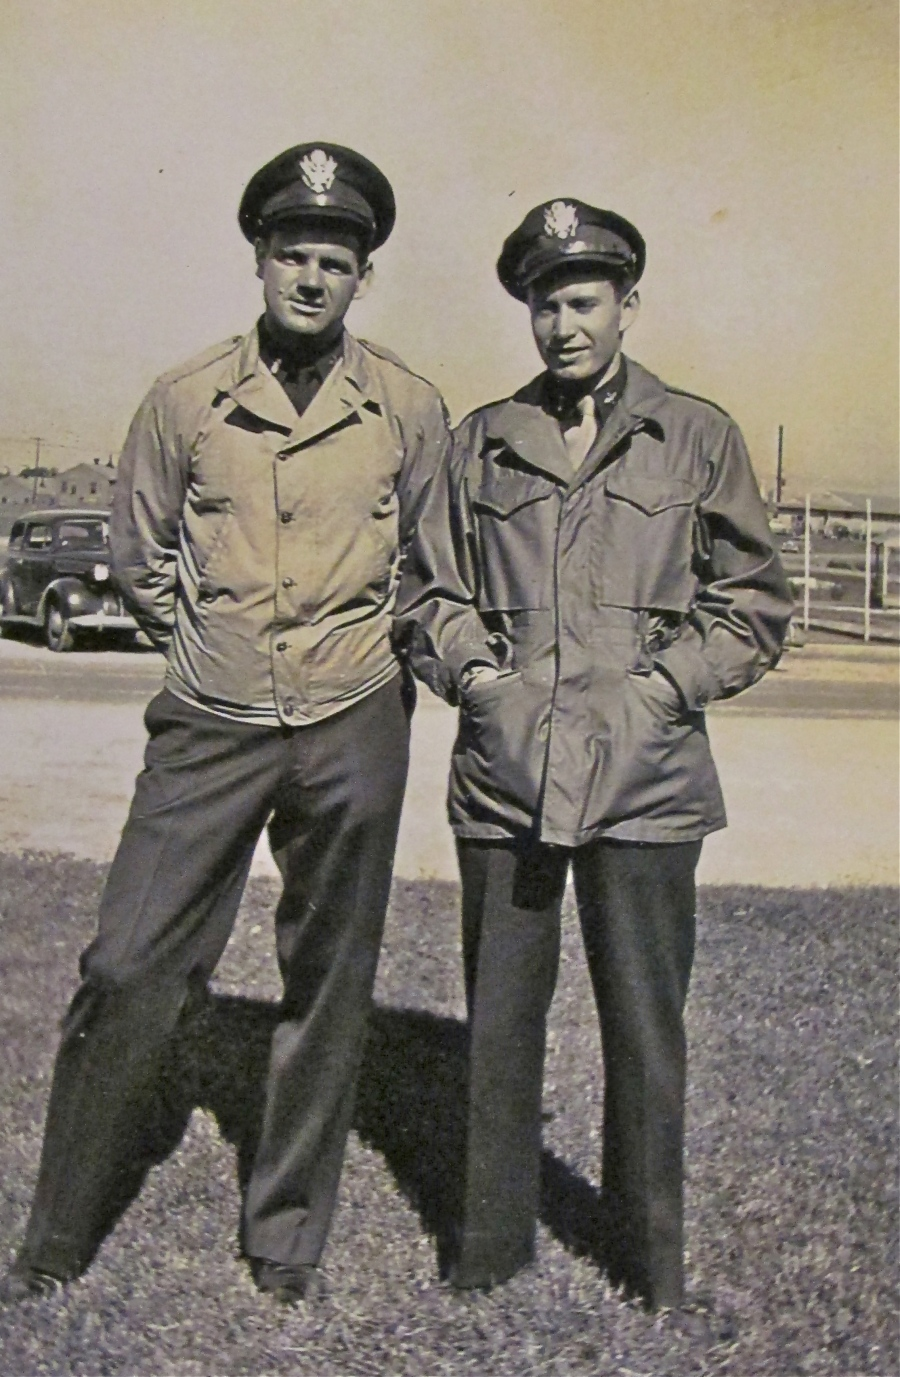 Hughes (right) stand with Bill Brooks, his bombardier, shot down with another B-25 crew over German held territory. Brooks and the co-pilot of the other plane were killed by their German captives. Photo provided